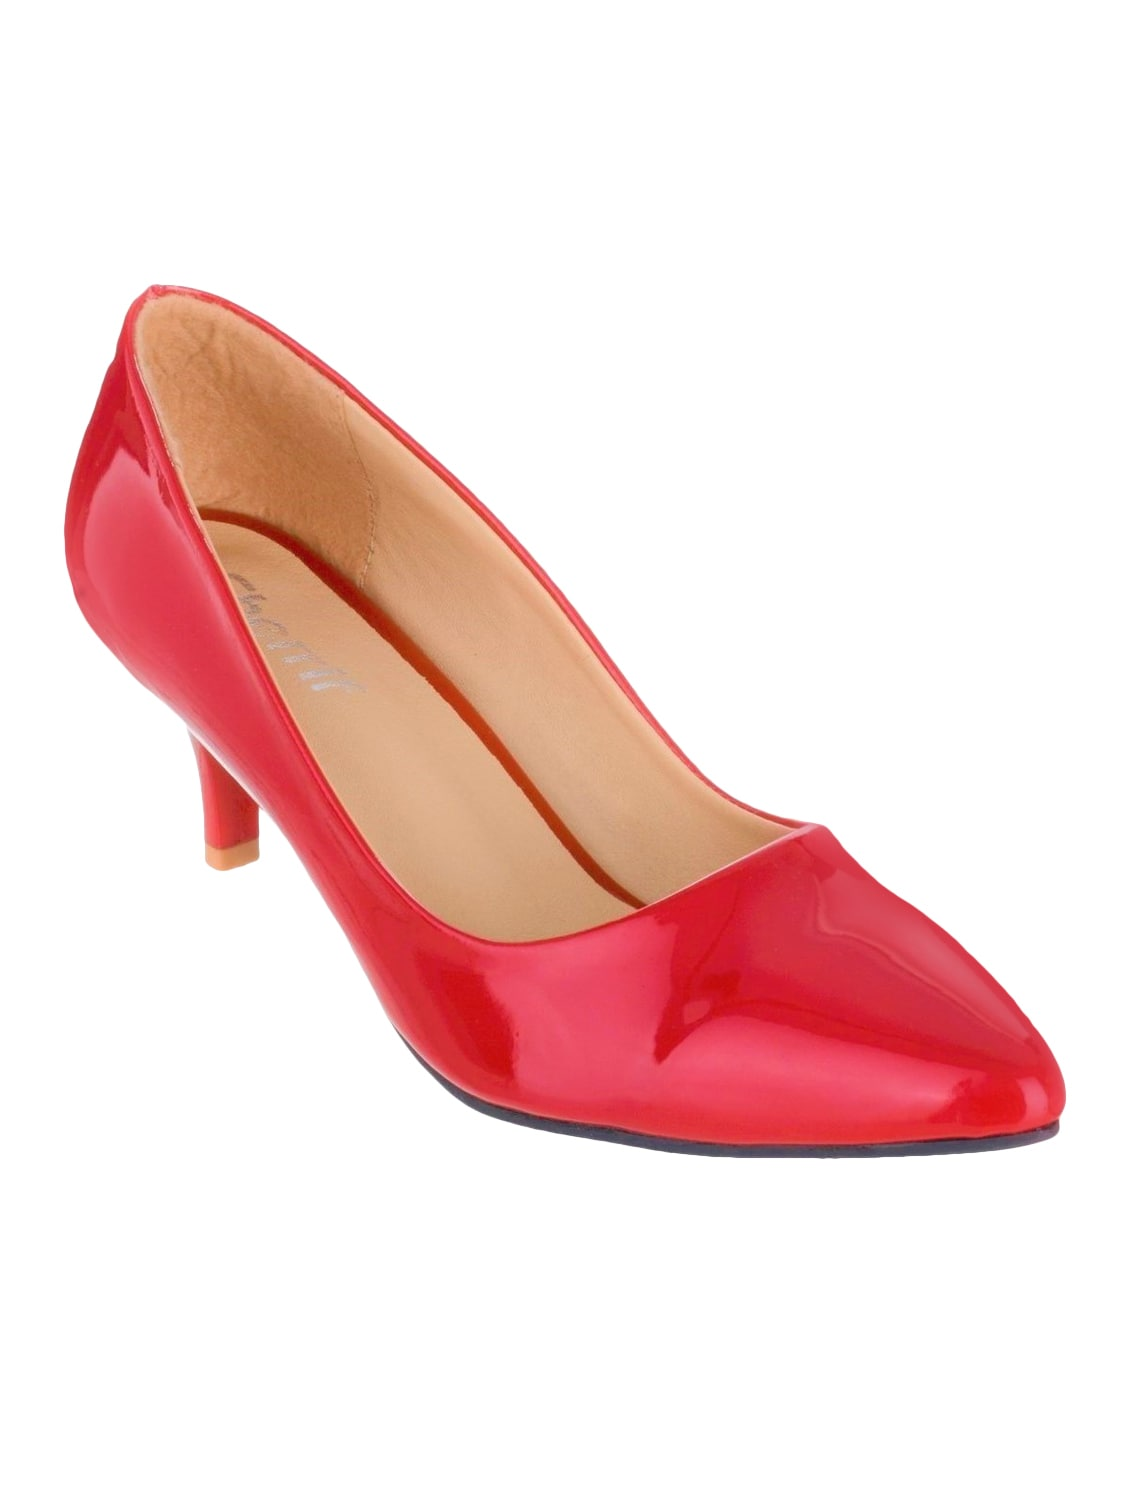 d0898c69591 Buy Red Faux Leather Slip On Pumps by Sherrif Shoes - Online shopping for  Pumps in India